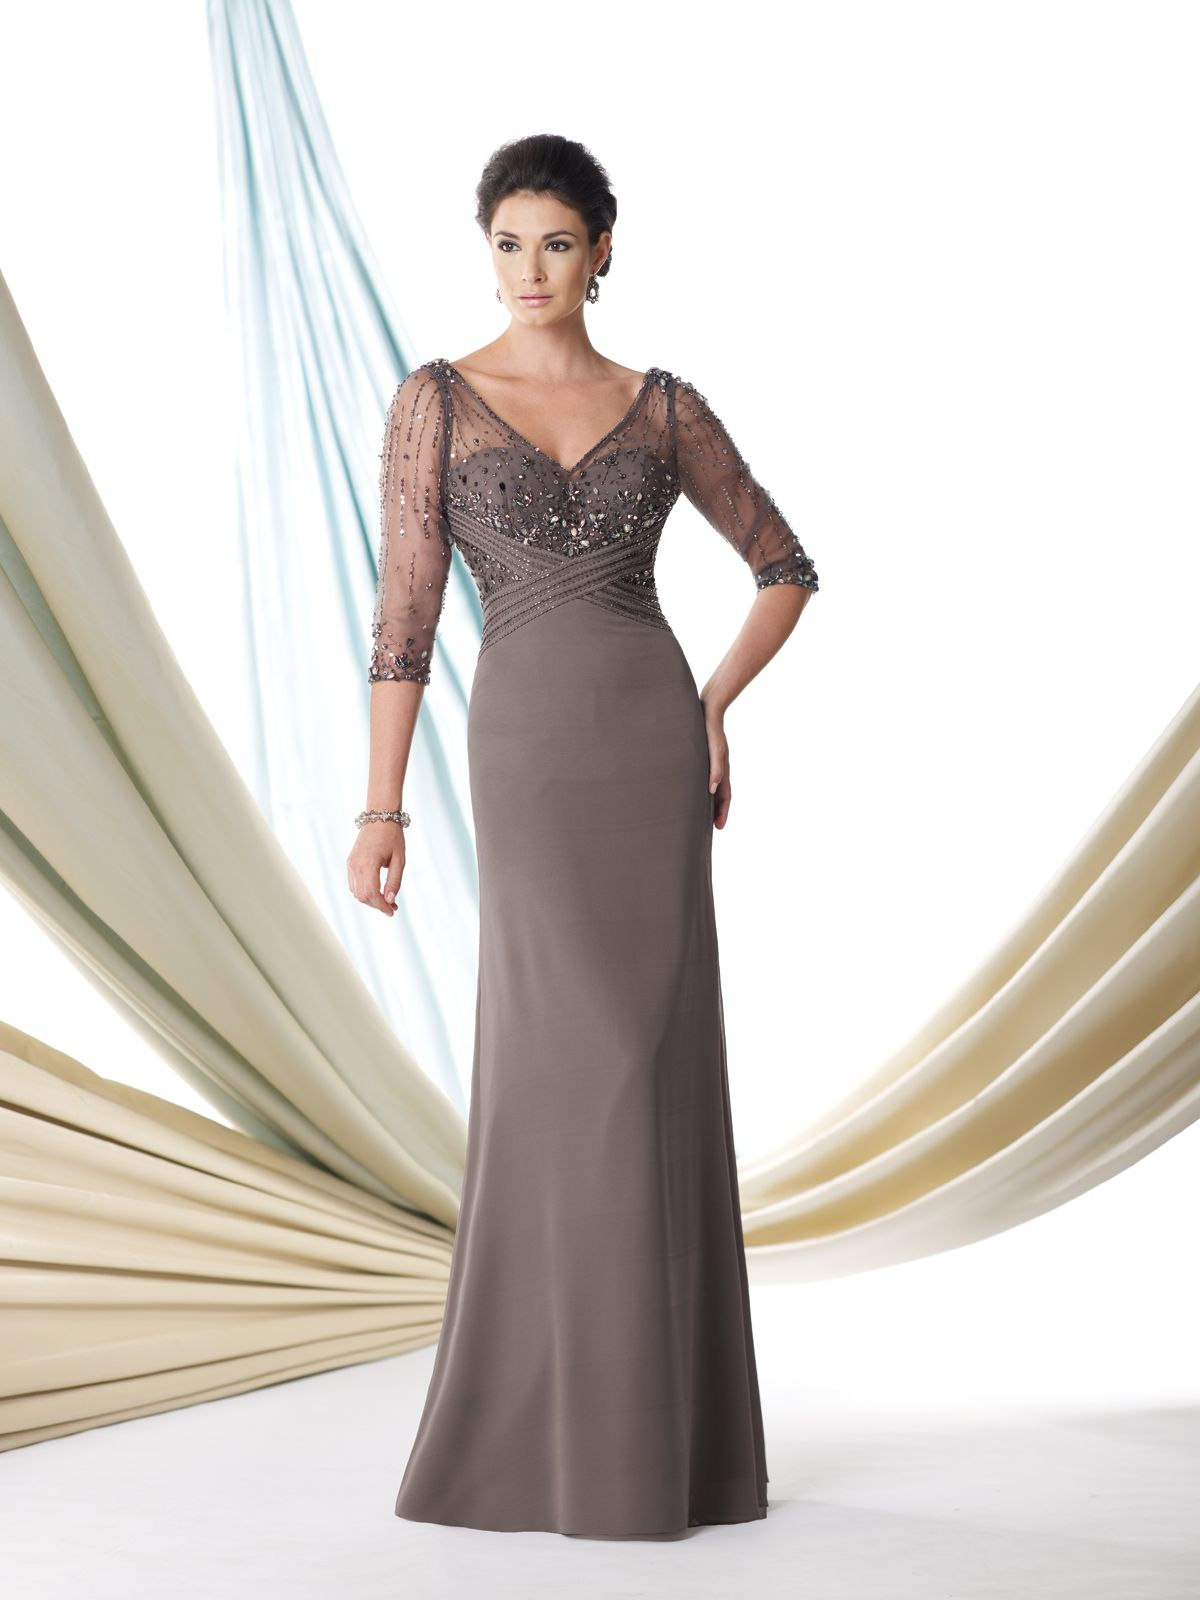 afc759bb0fa Montage dress in Taupe. | mother of the wedding dresses | Wedding ...